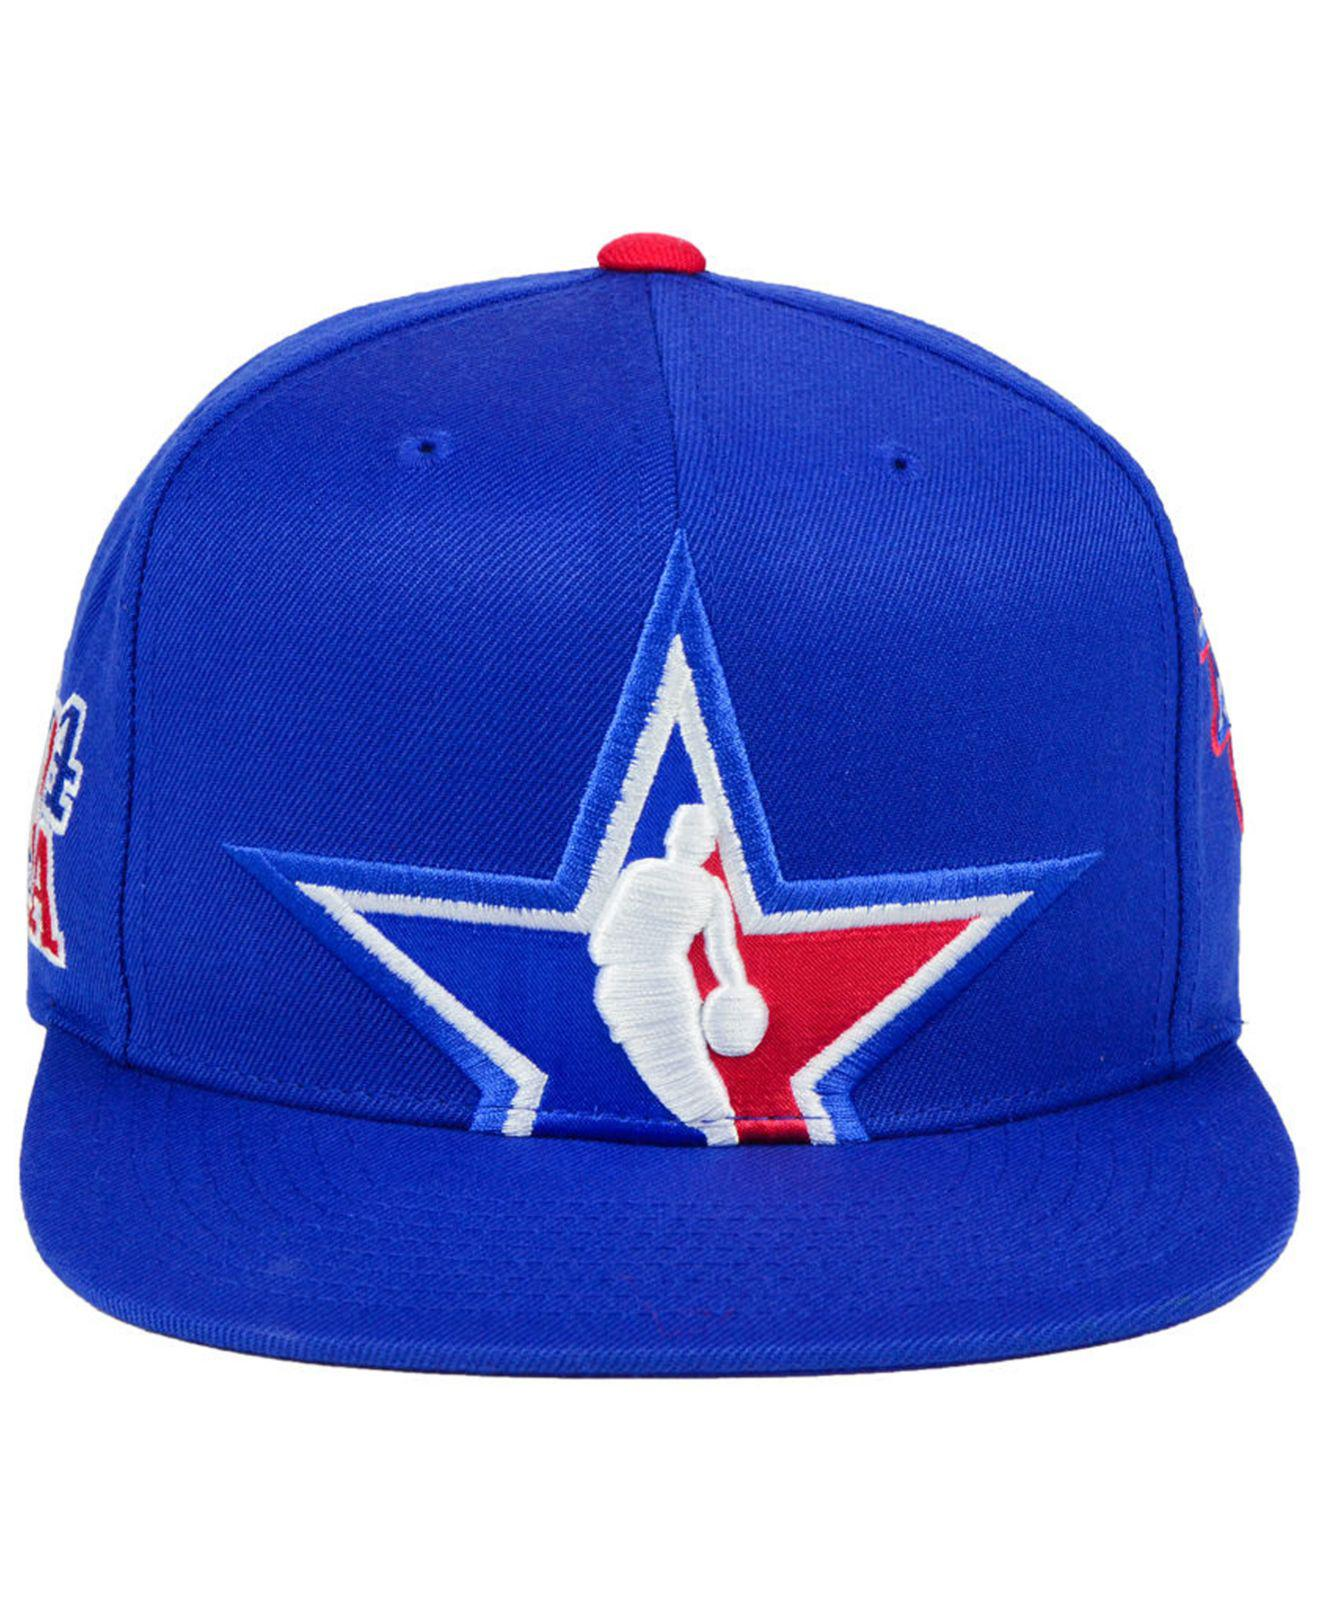 huge discount d4192 c540b Mitchell   Ness 2018 Nba All Star Collection East Snapback Cap in ...